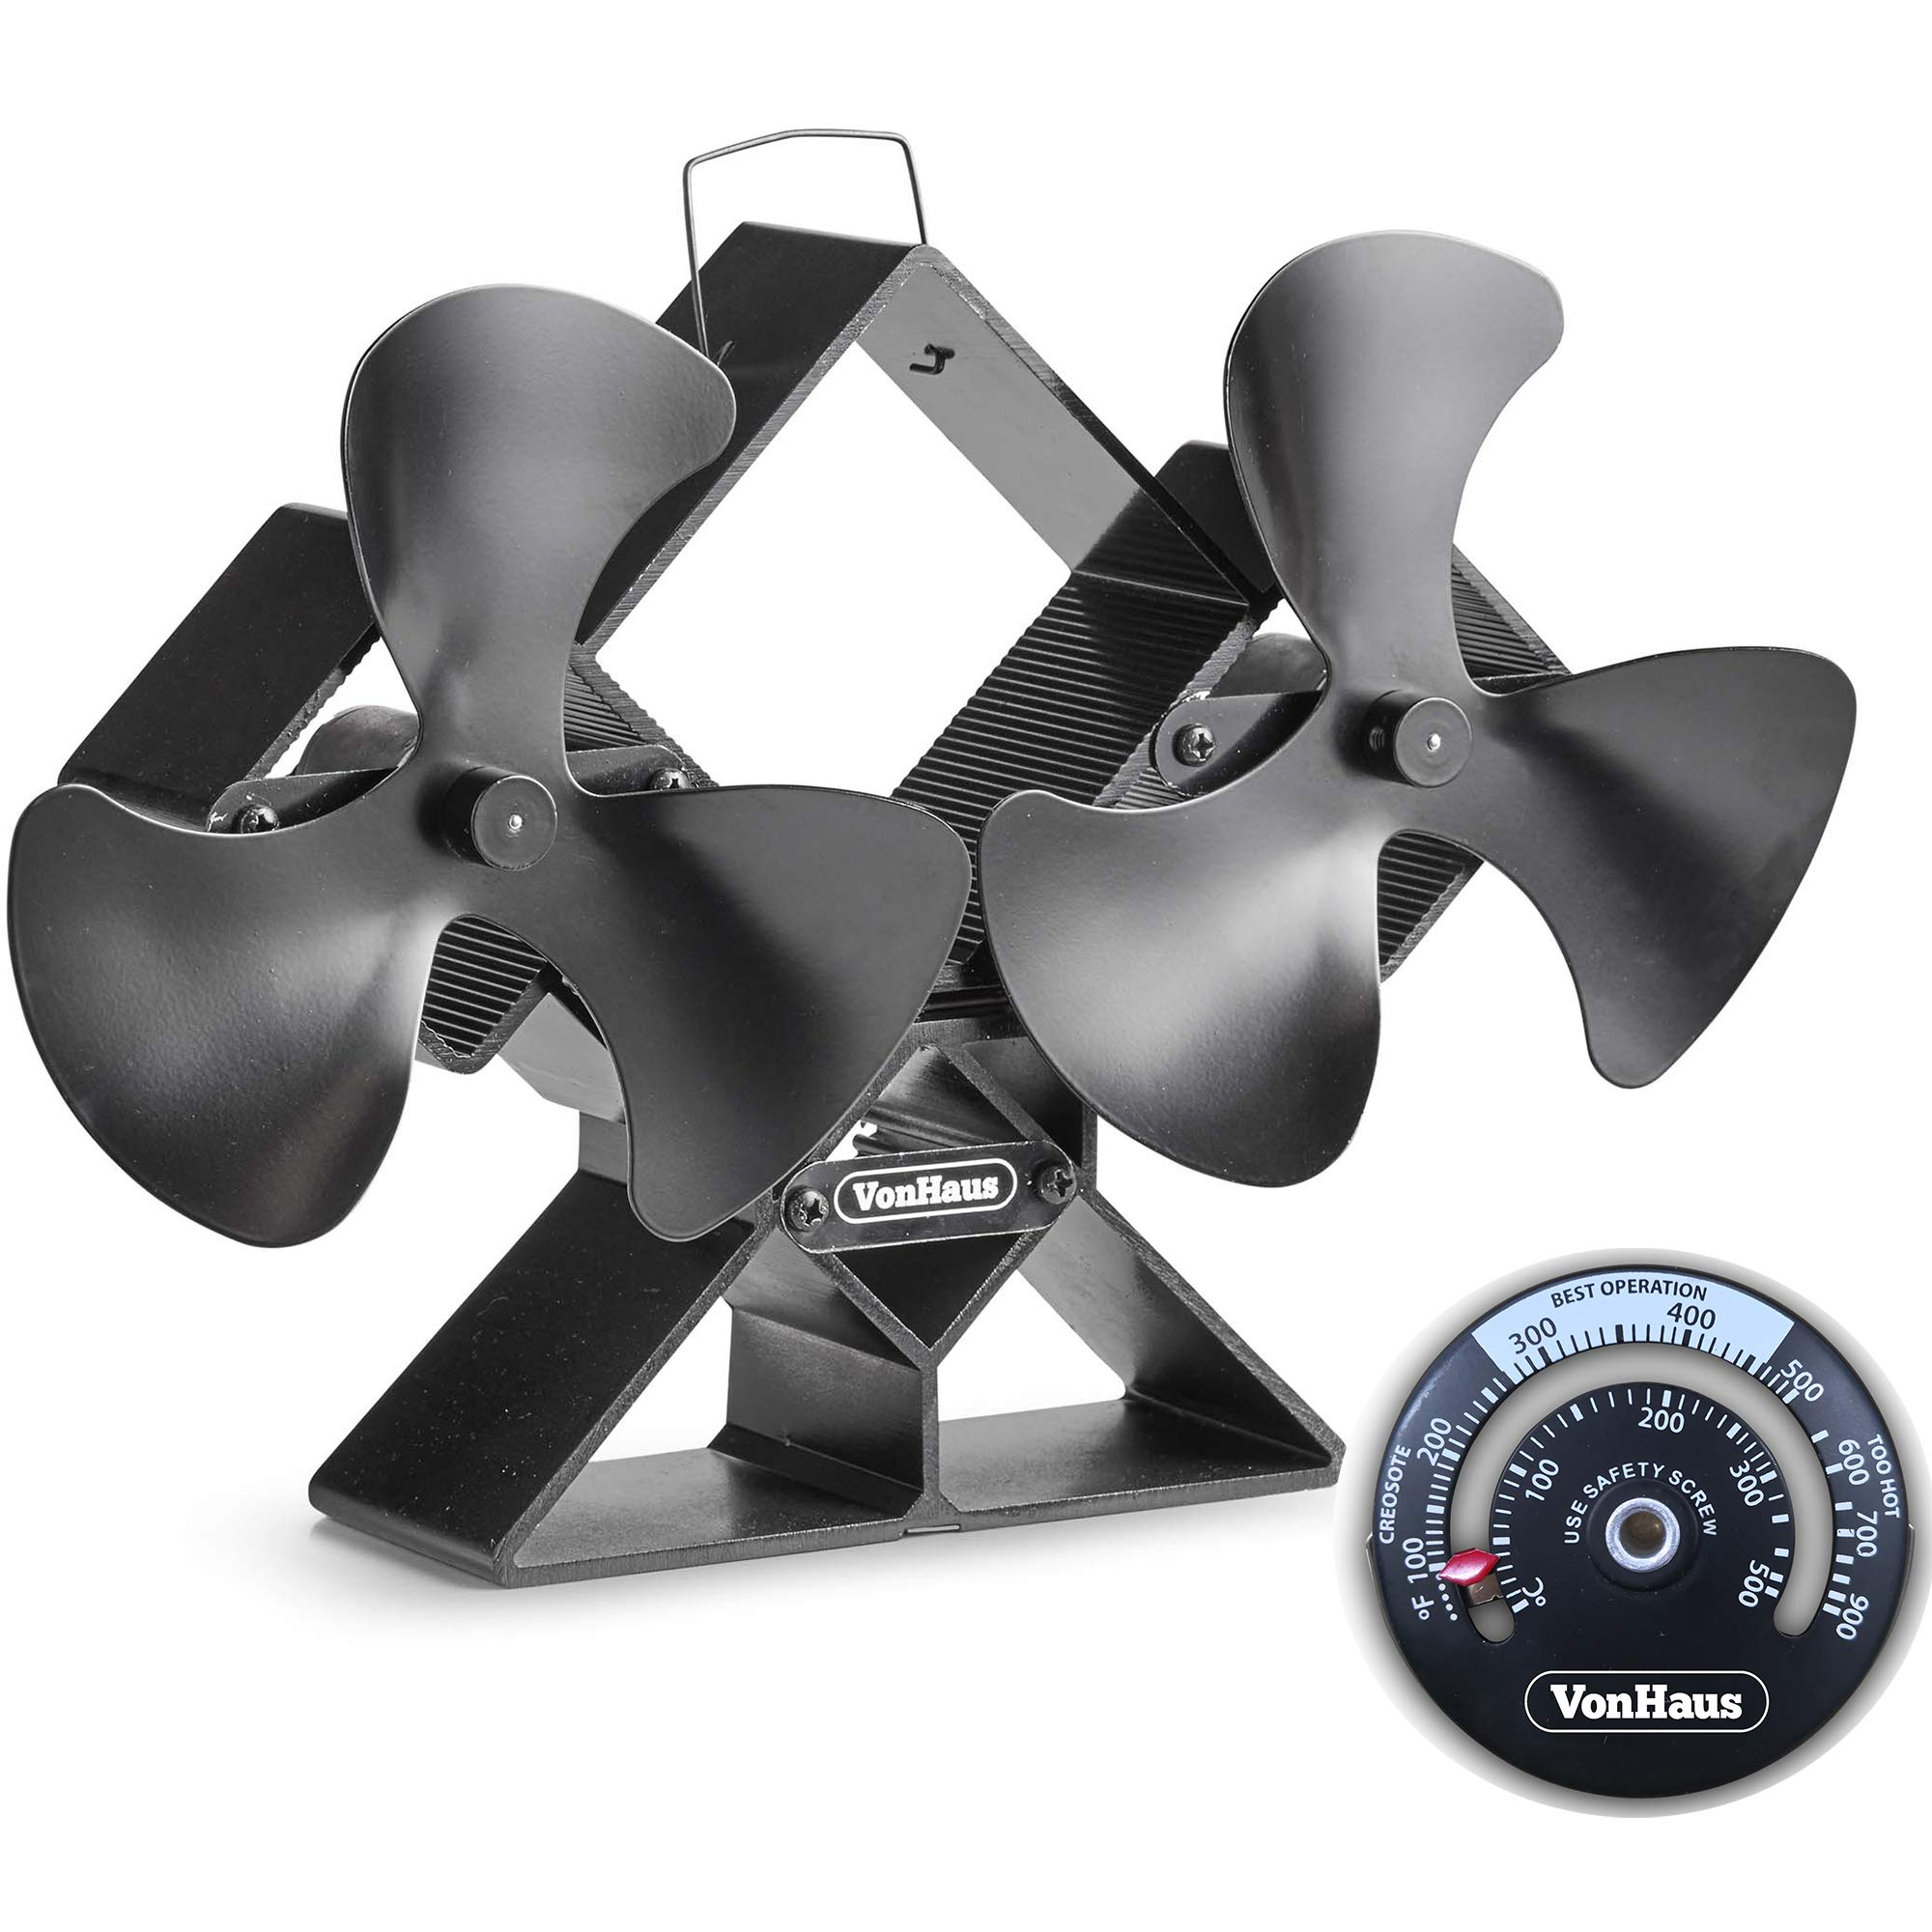 VonHaus 6-Blade Twin Motor Double Heat Powered Wood Stove Fan with Temperature Gauge - Ultra Quiet Fireplace Wood Burning Eco Fan for Efficient Heat Distribution - Black (6 Blade) by VonHaus